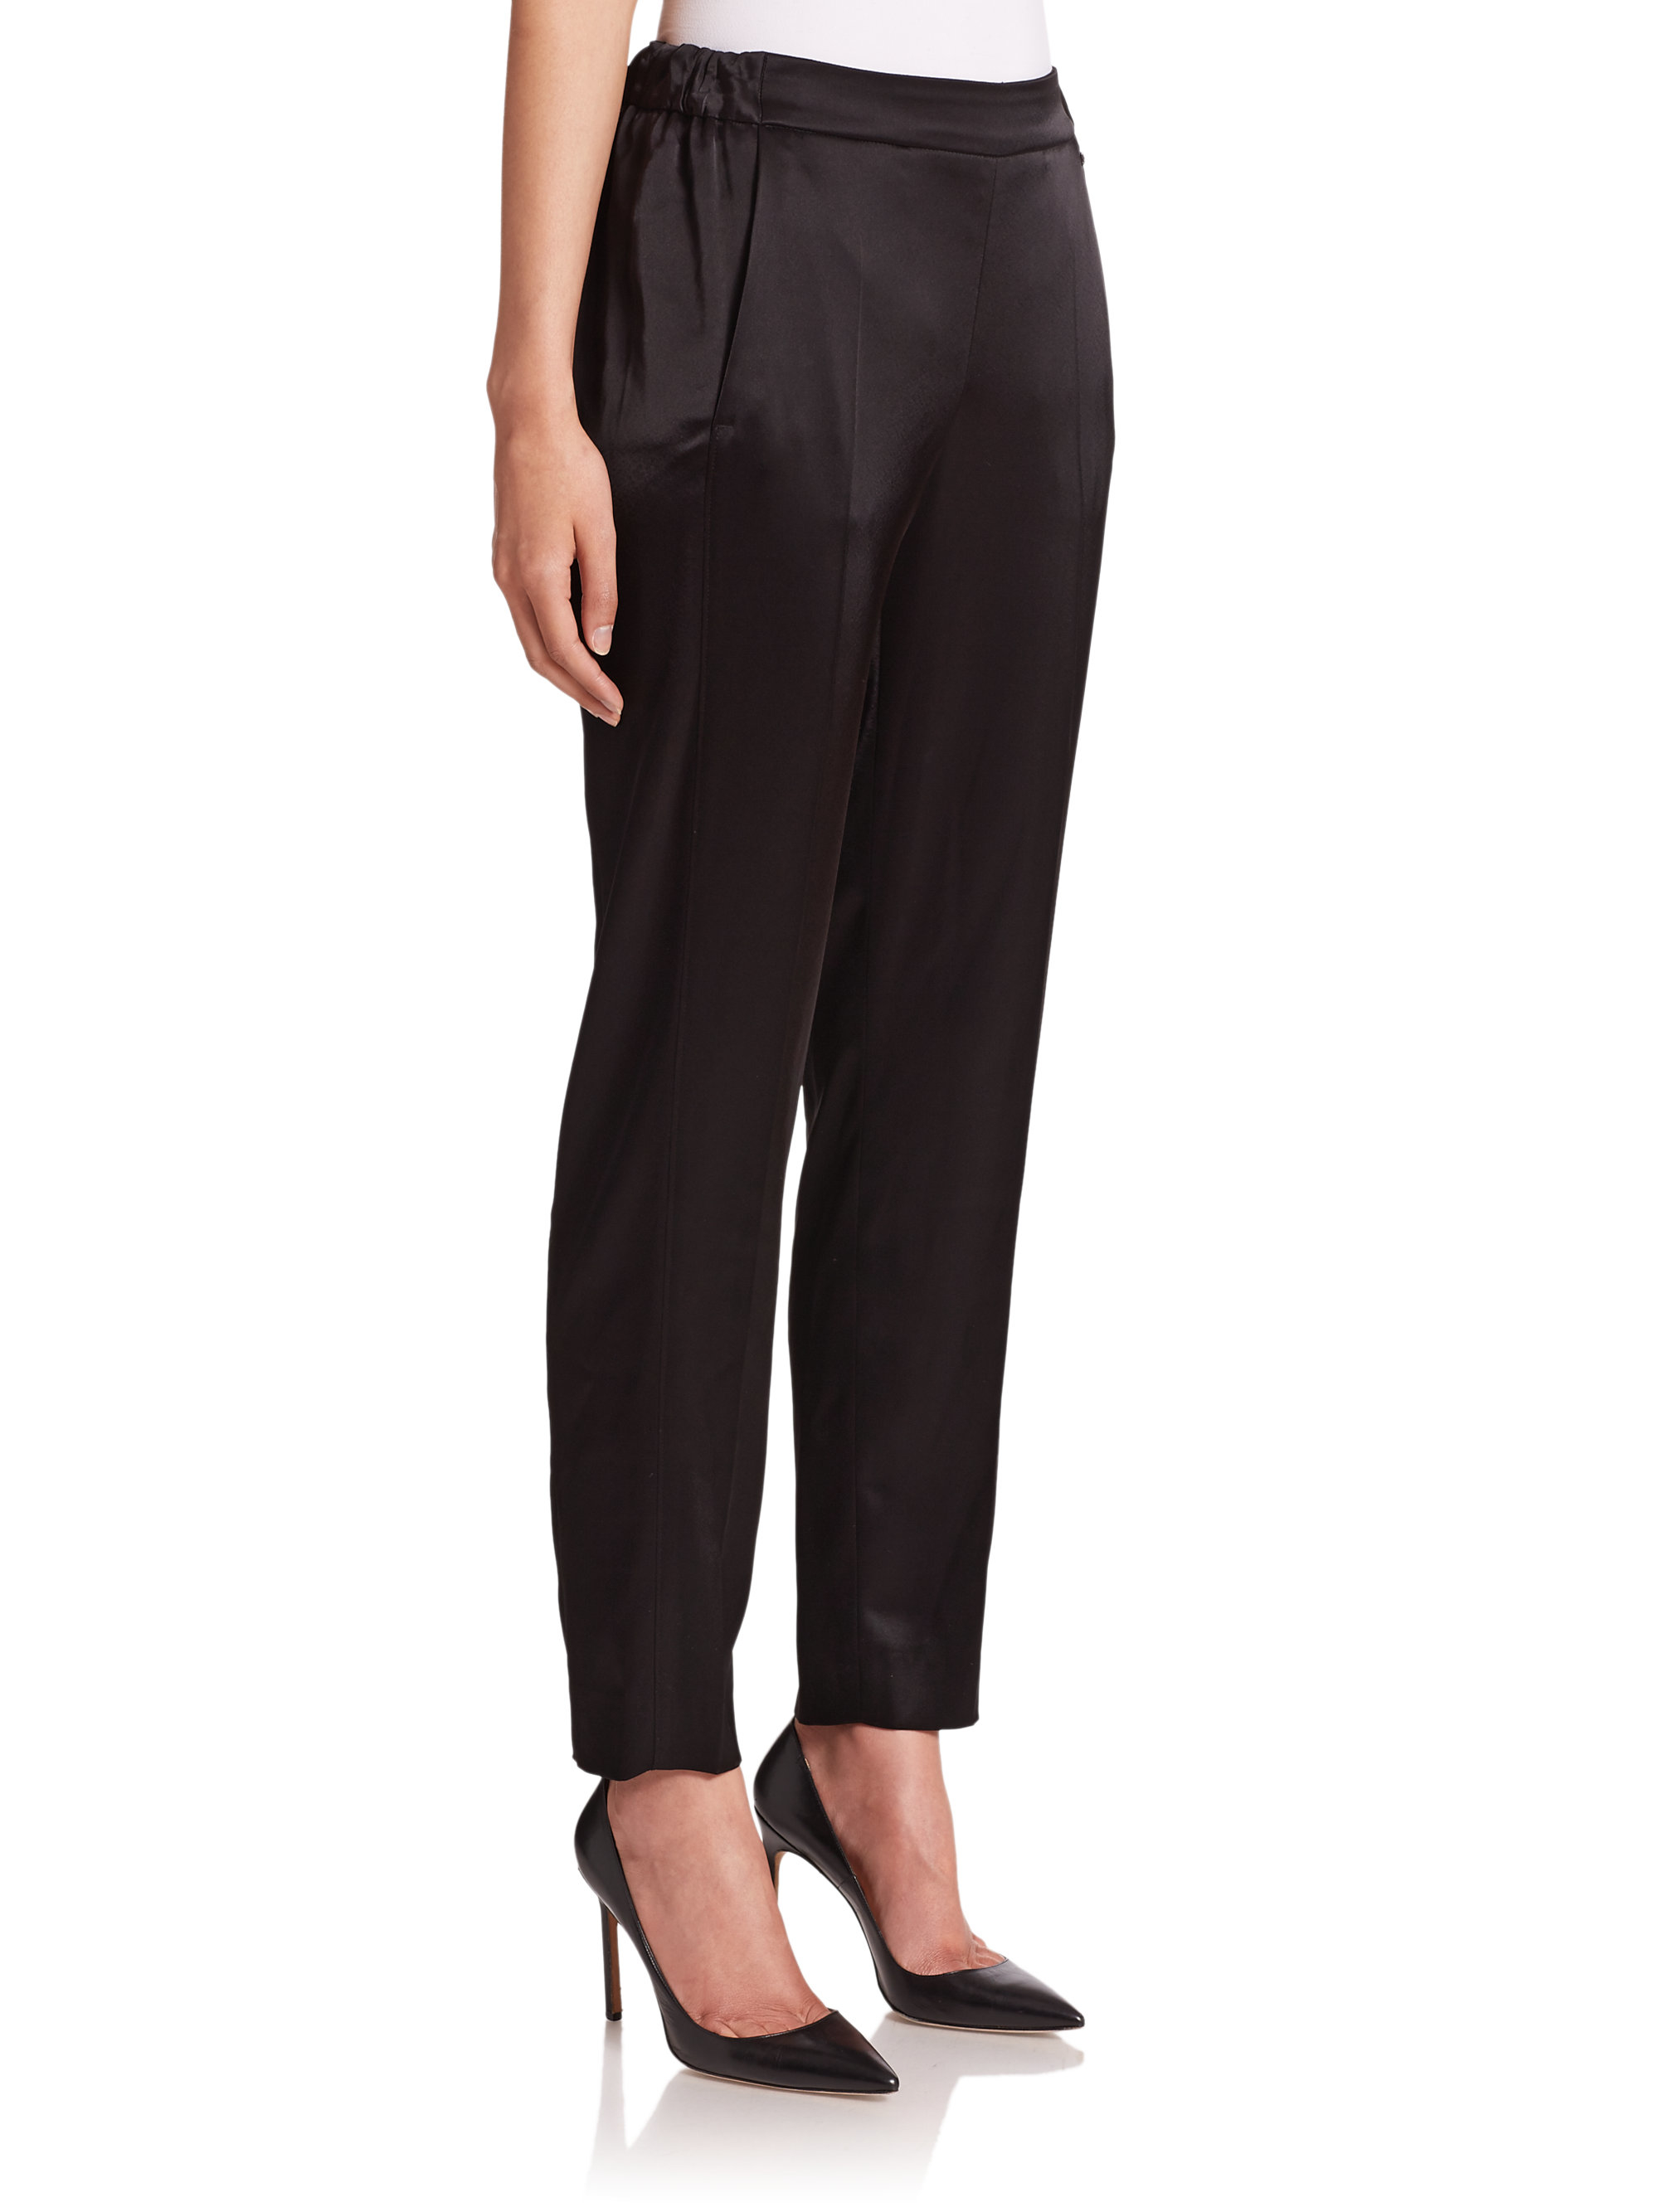 Escada Satin Evening Pants in Black | Lyst